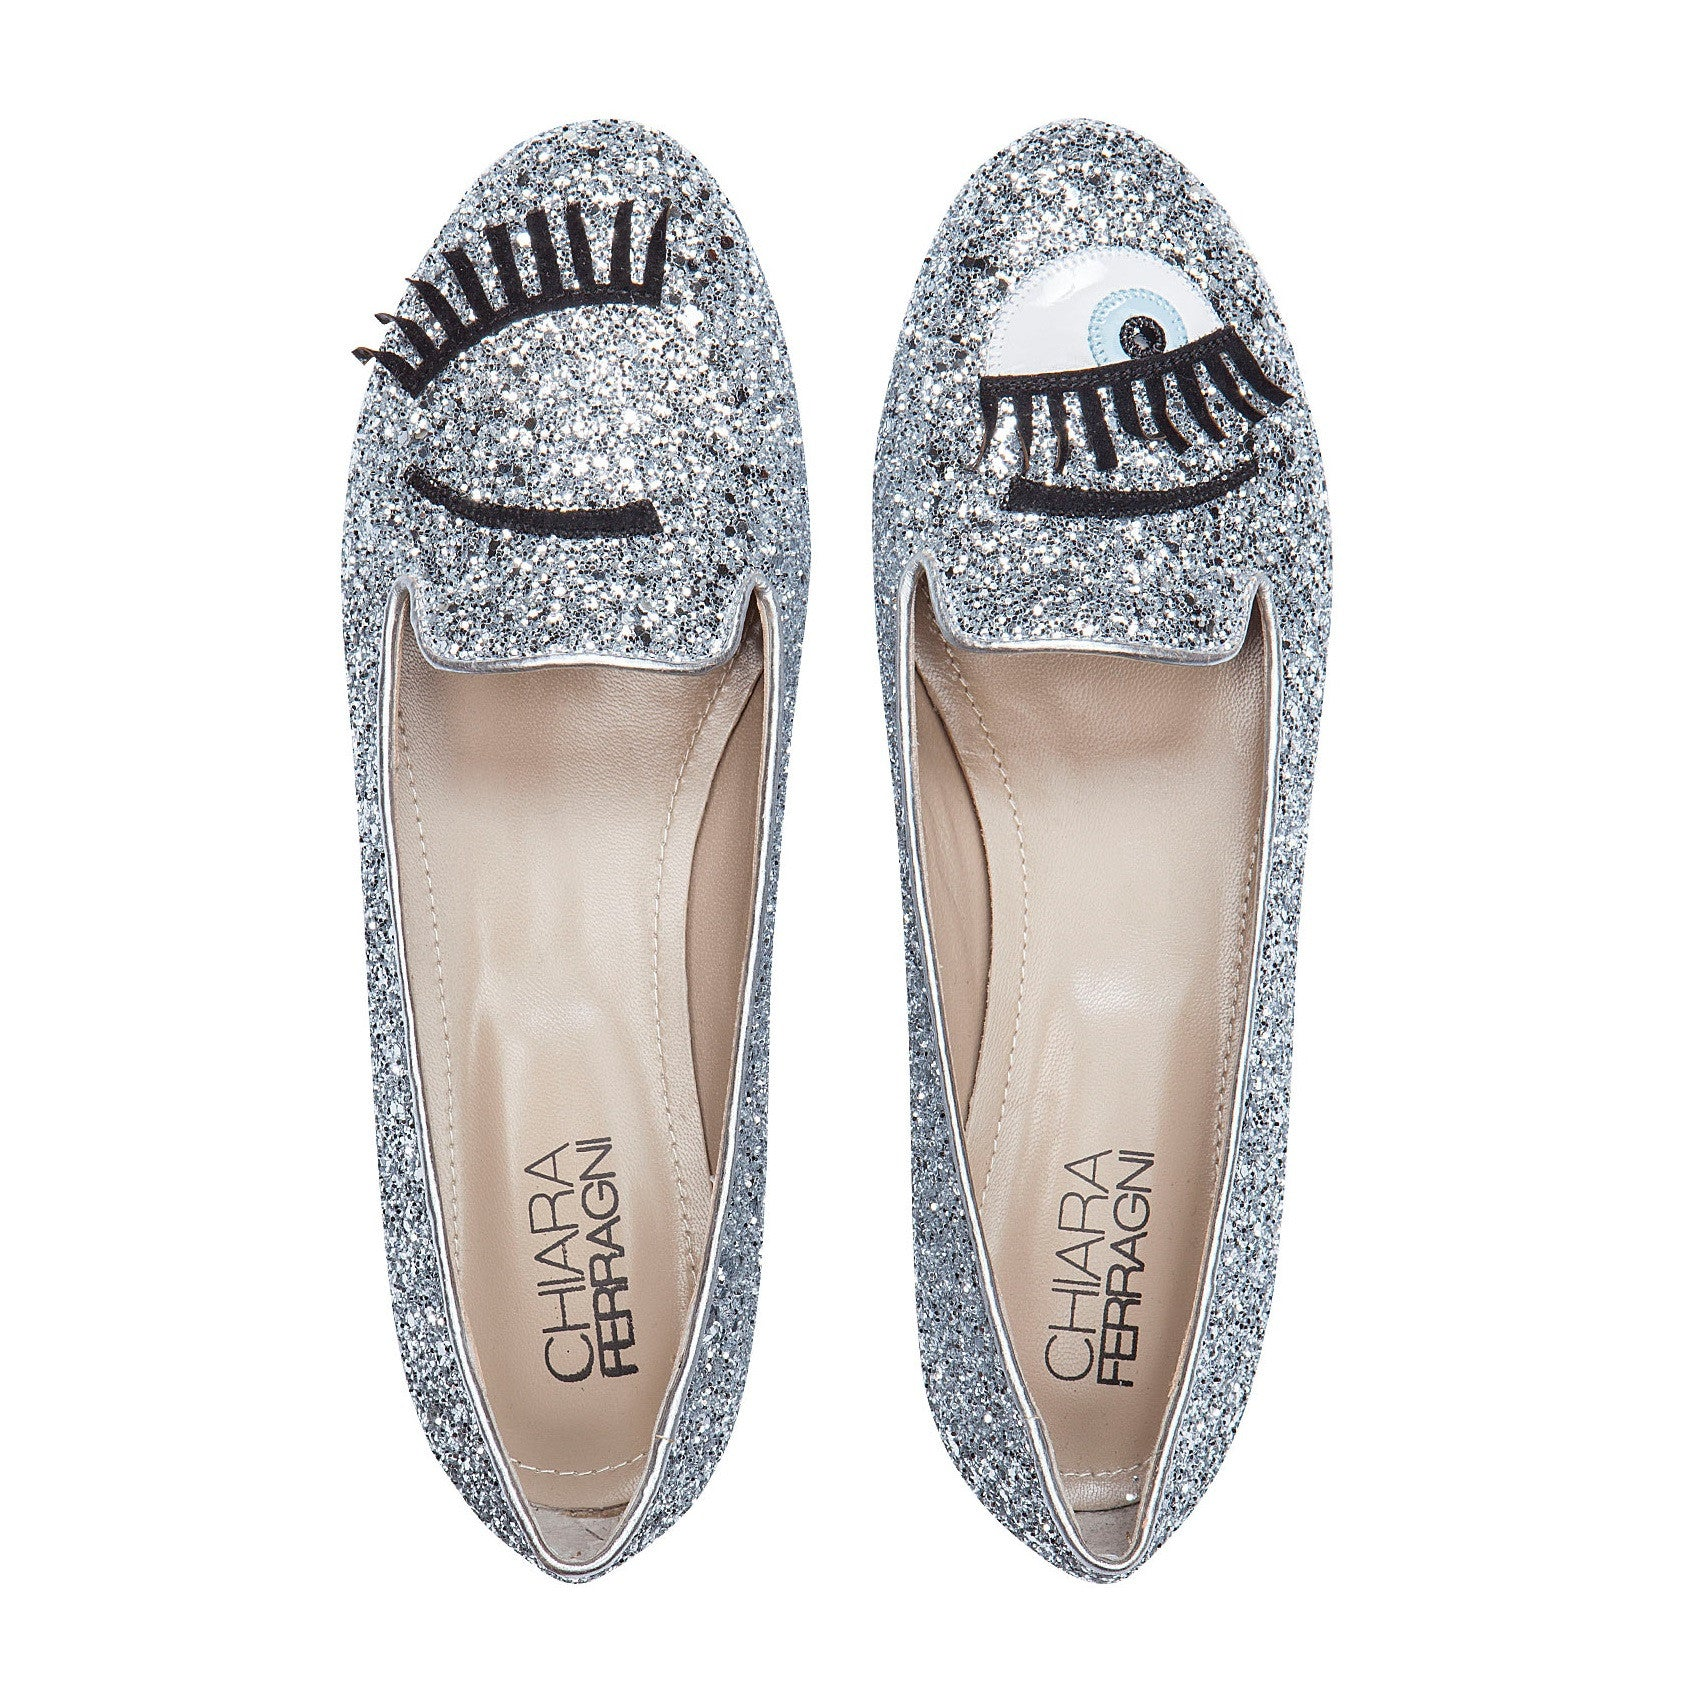 Chiara Ferragni Flirting Eyes slippers